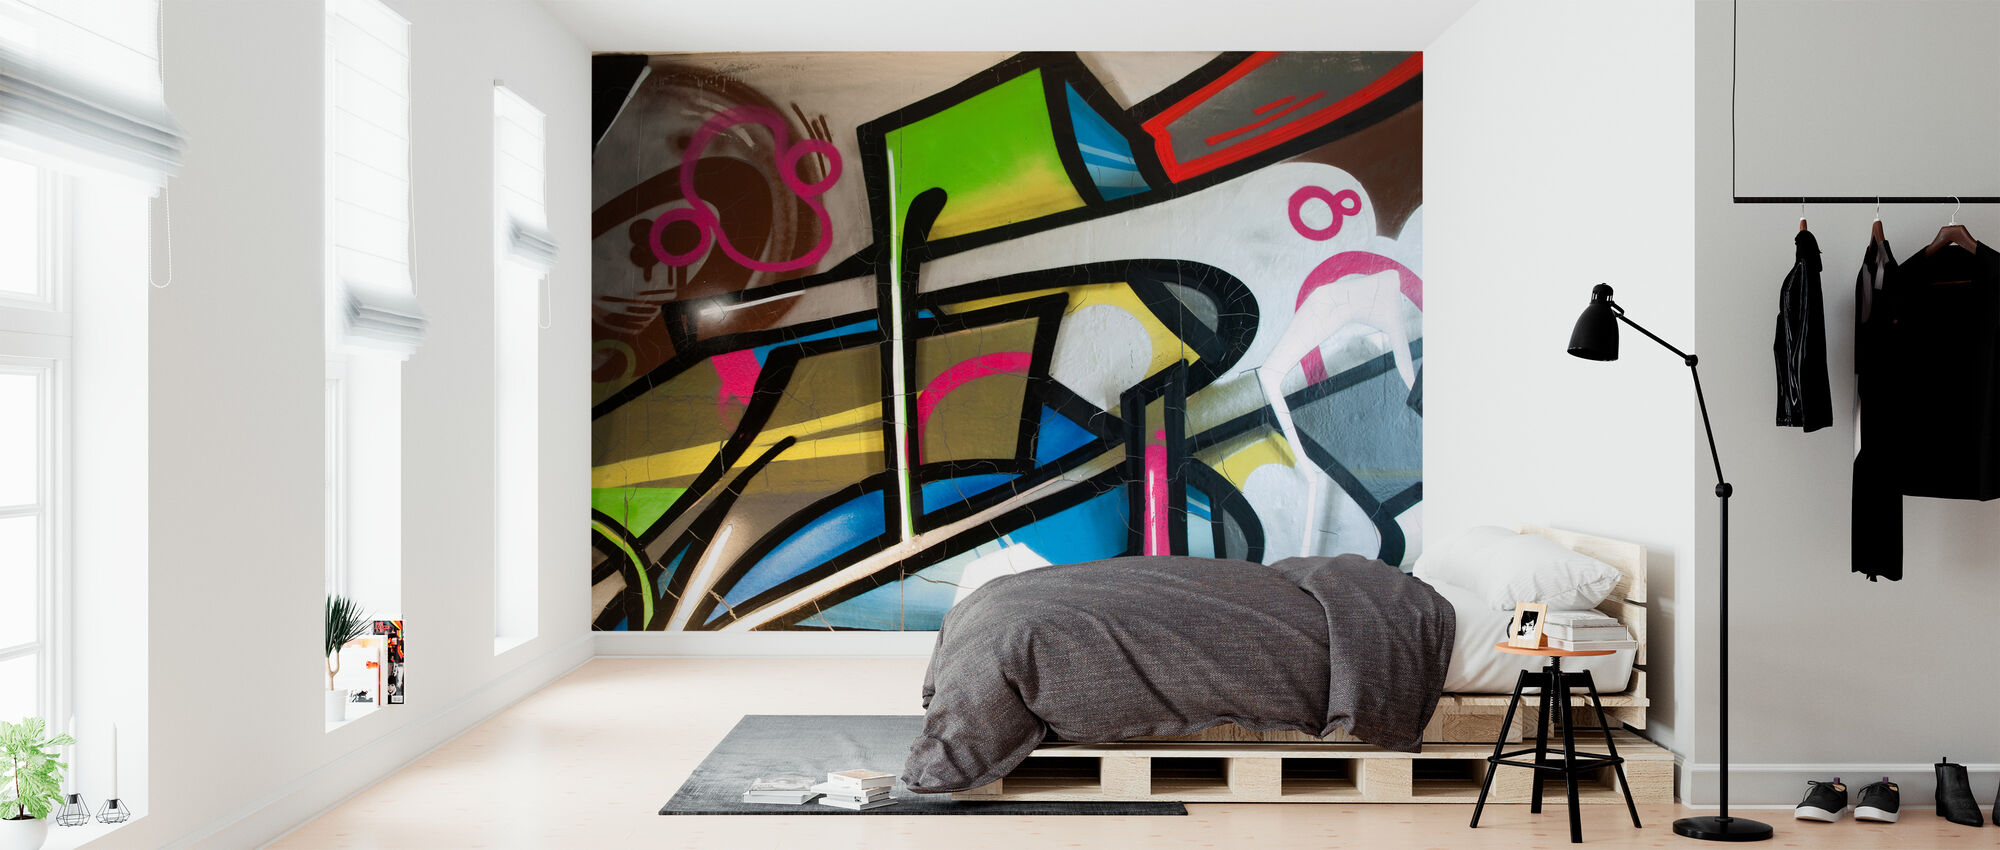 Colorful Graffiti - Wallpaper - Bedroom